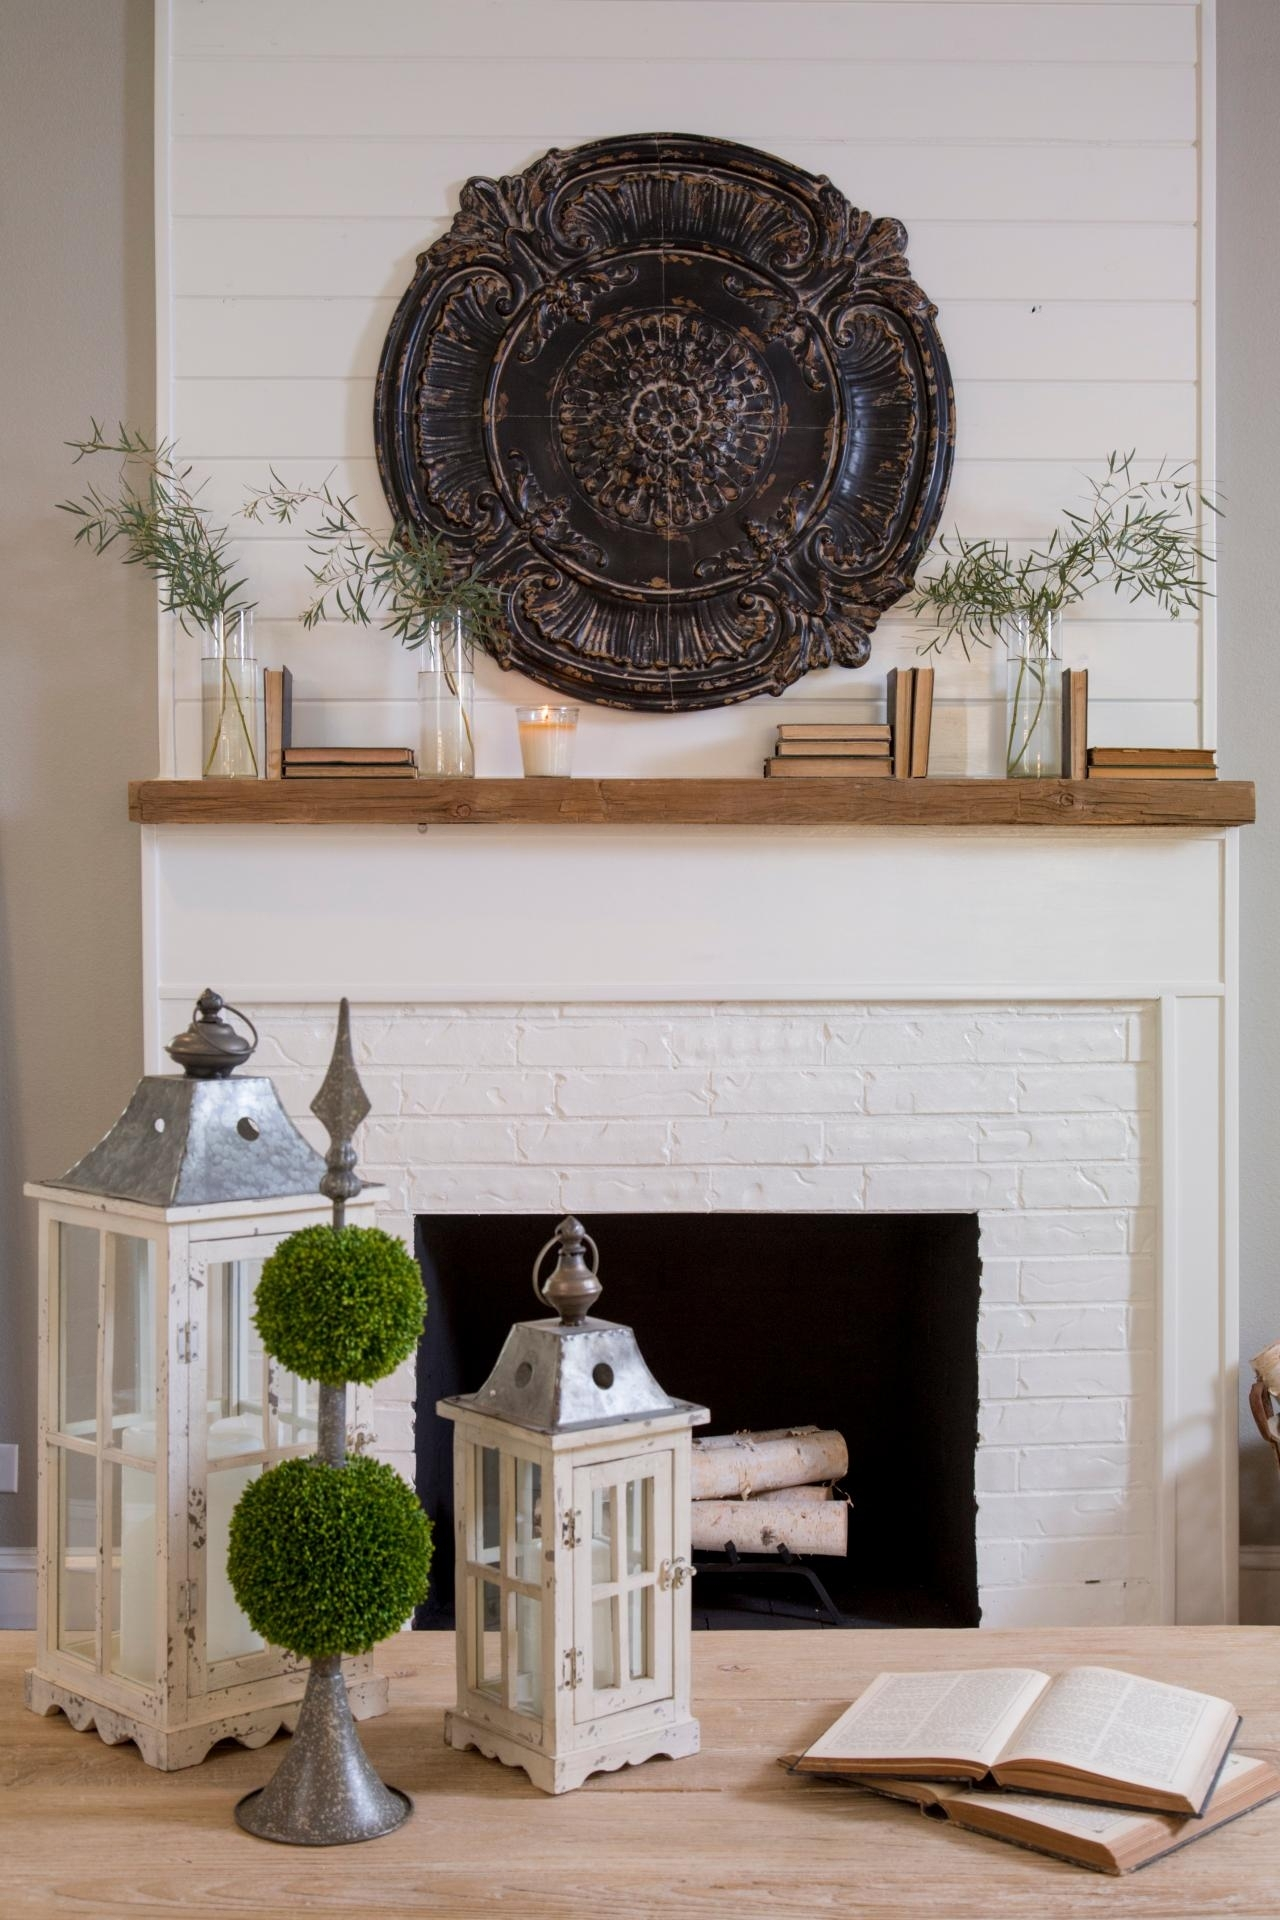 18 Genius Wall Decor Ideas | Hgtv's Decorating & Design Blog | Hgtv Within Most Popular Wall Accents Over Fireplace (View 2 of 15)